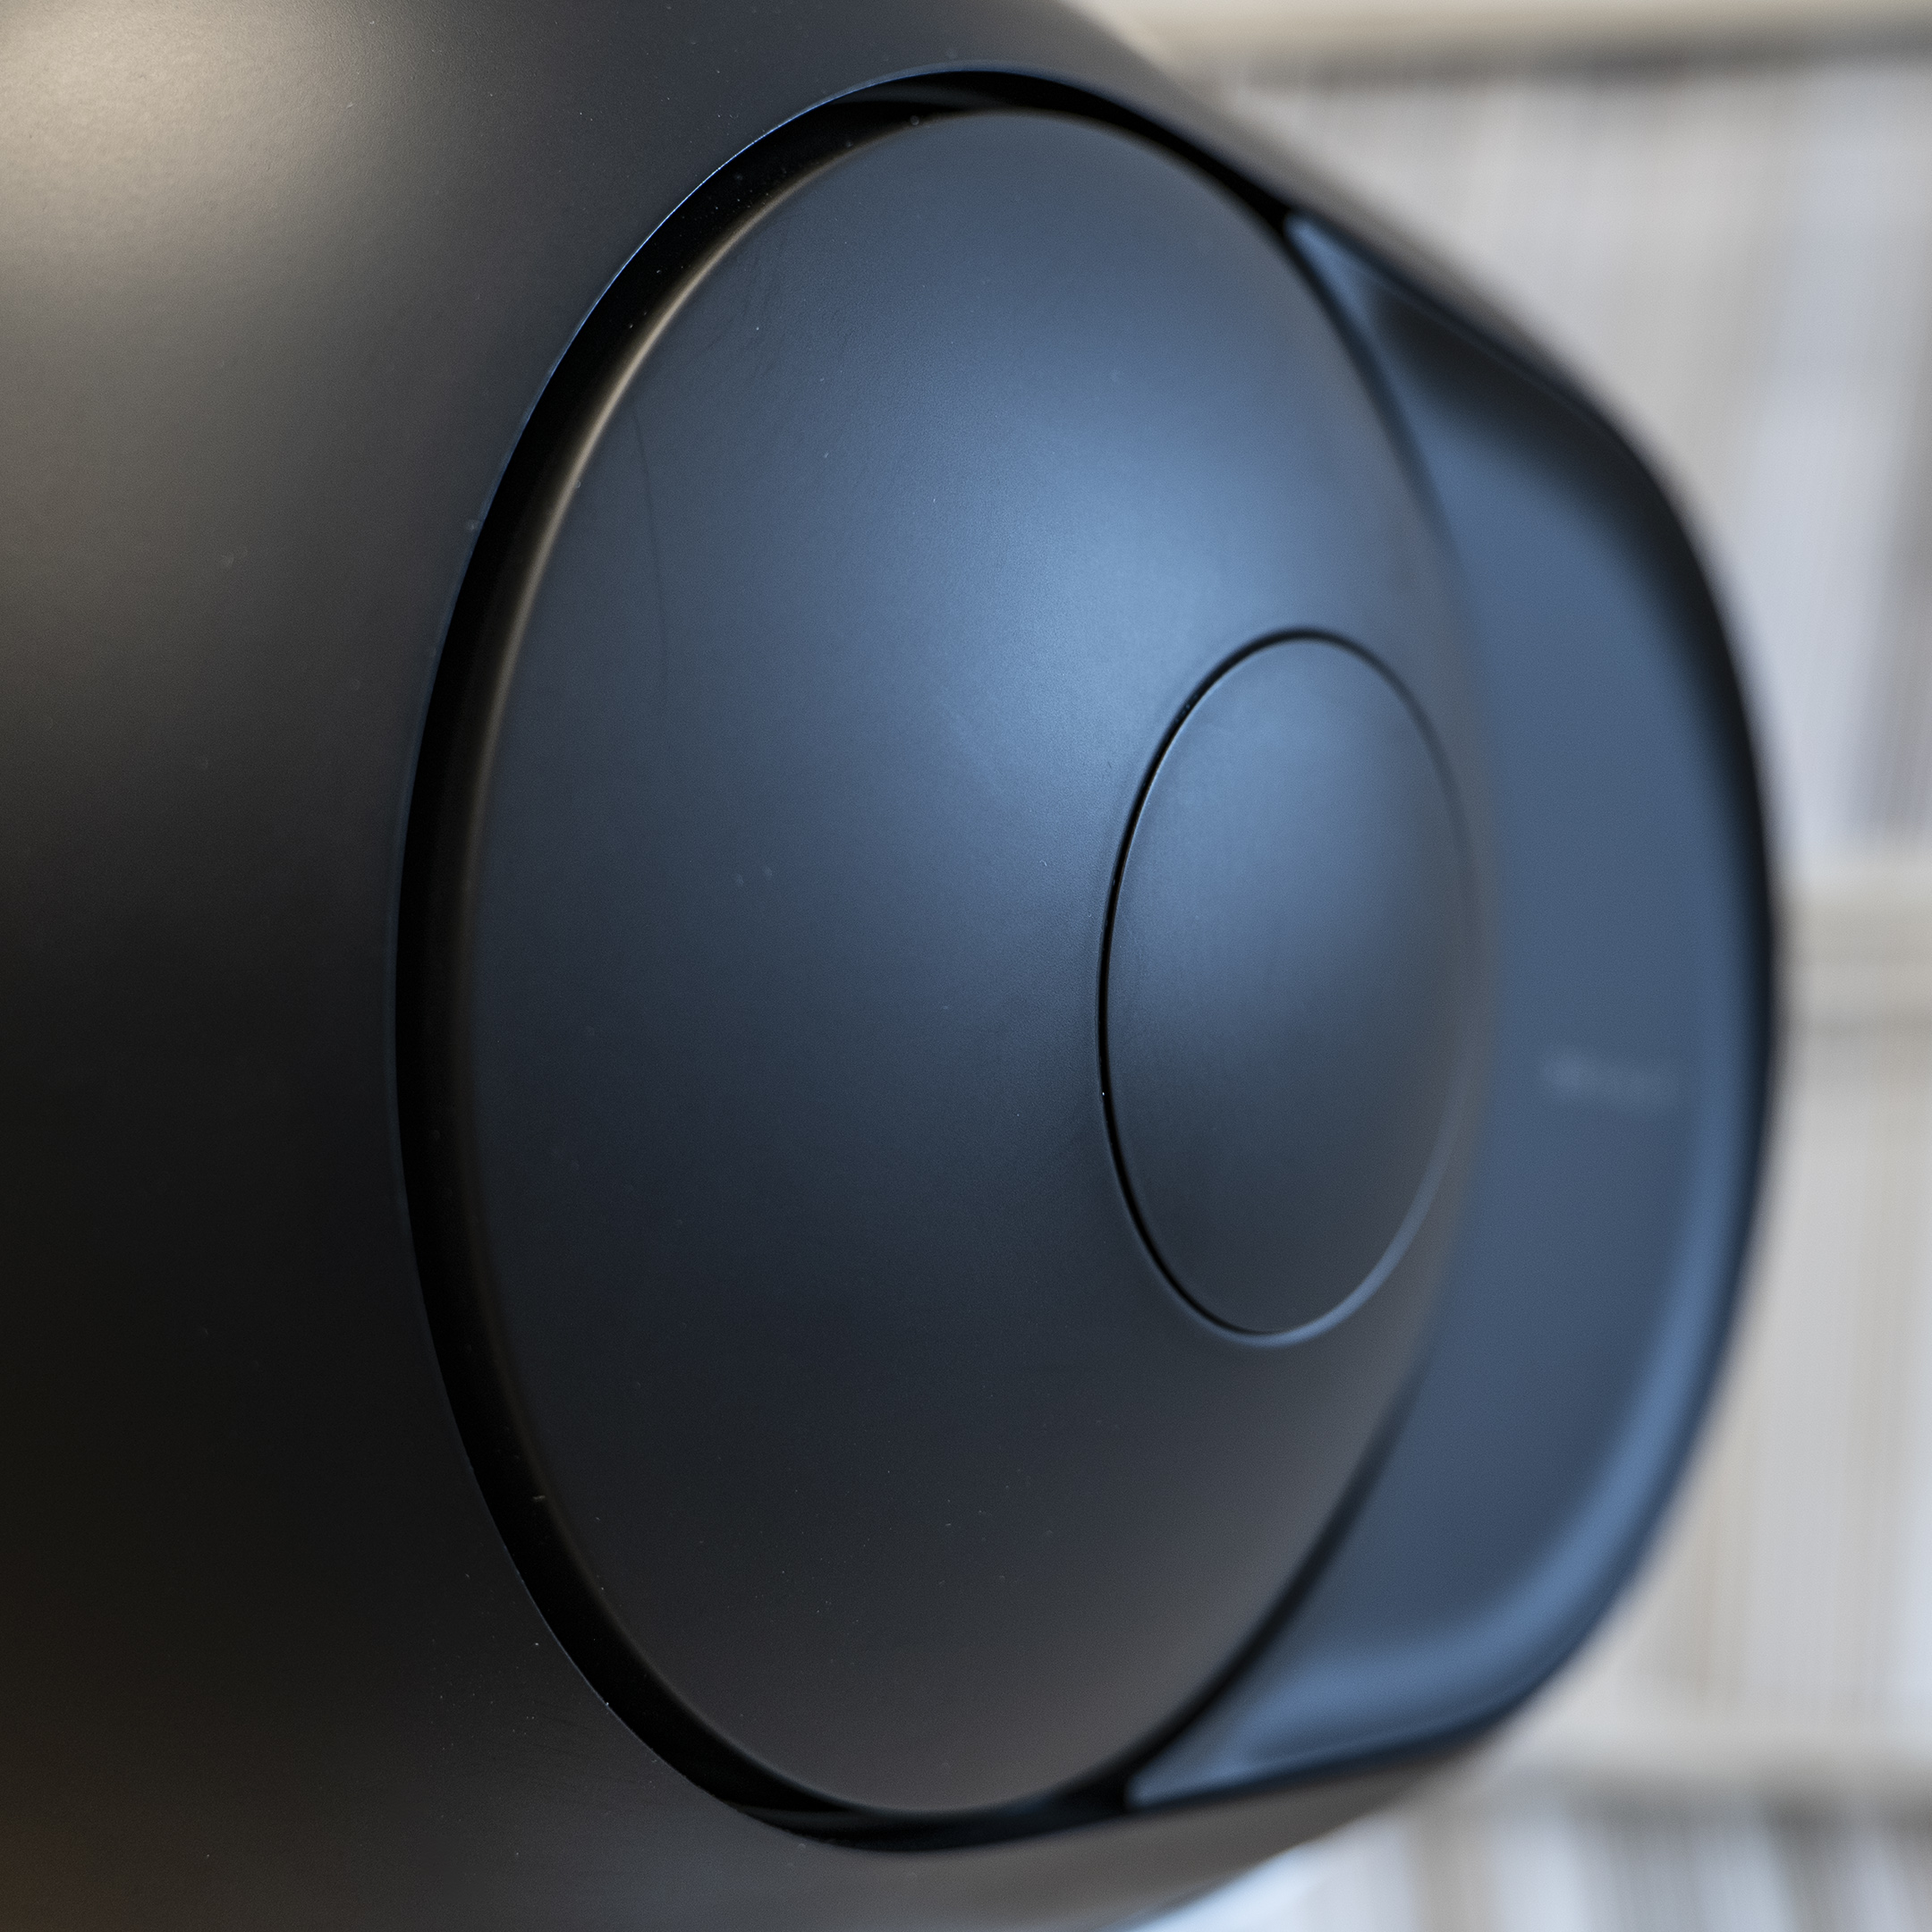 Devialet Phantom I woofer